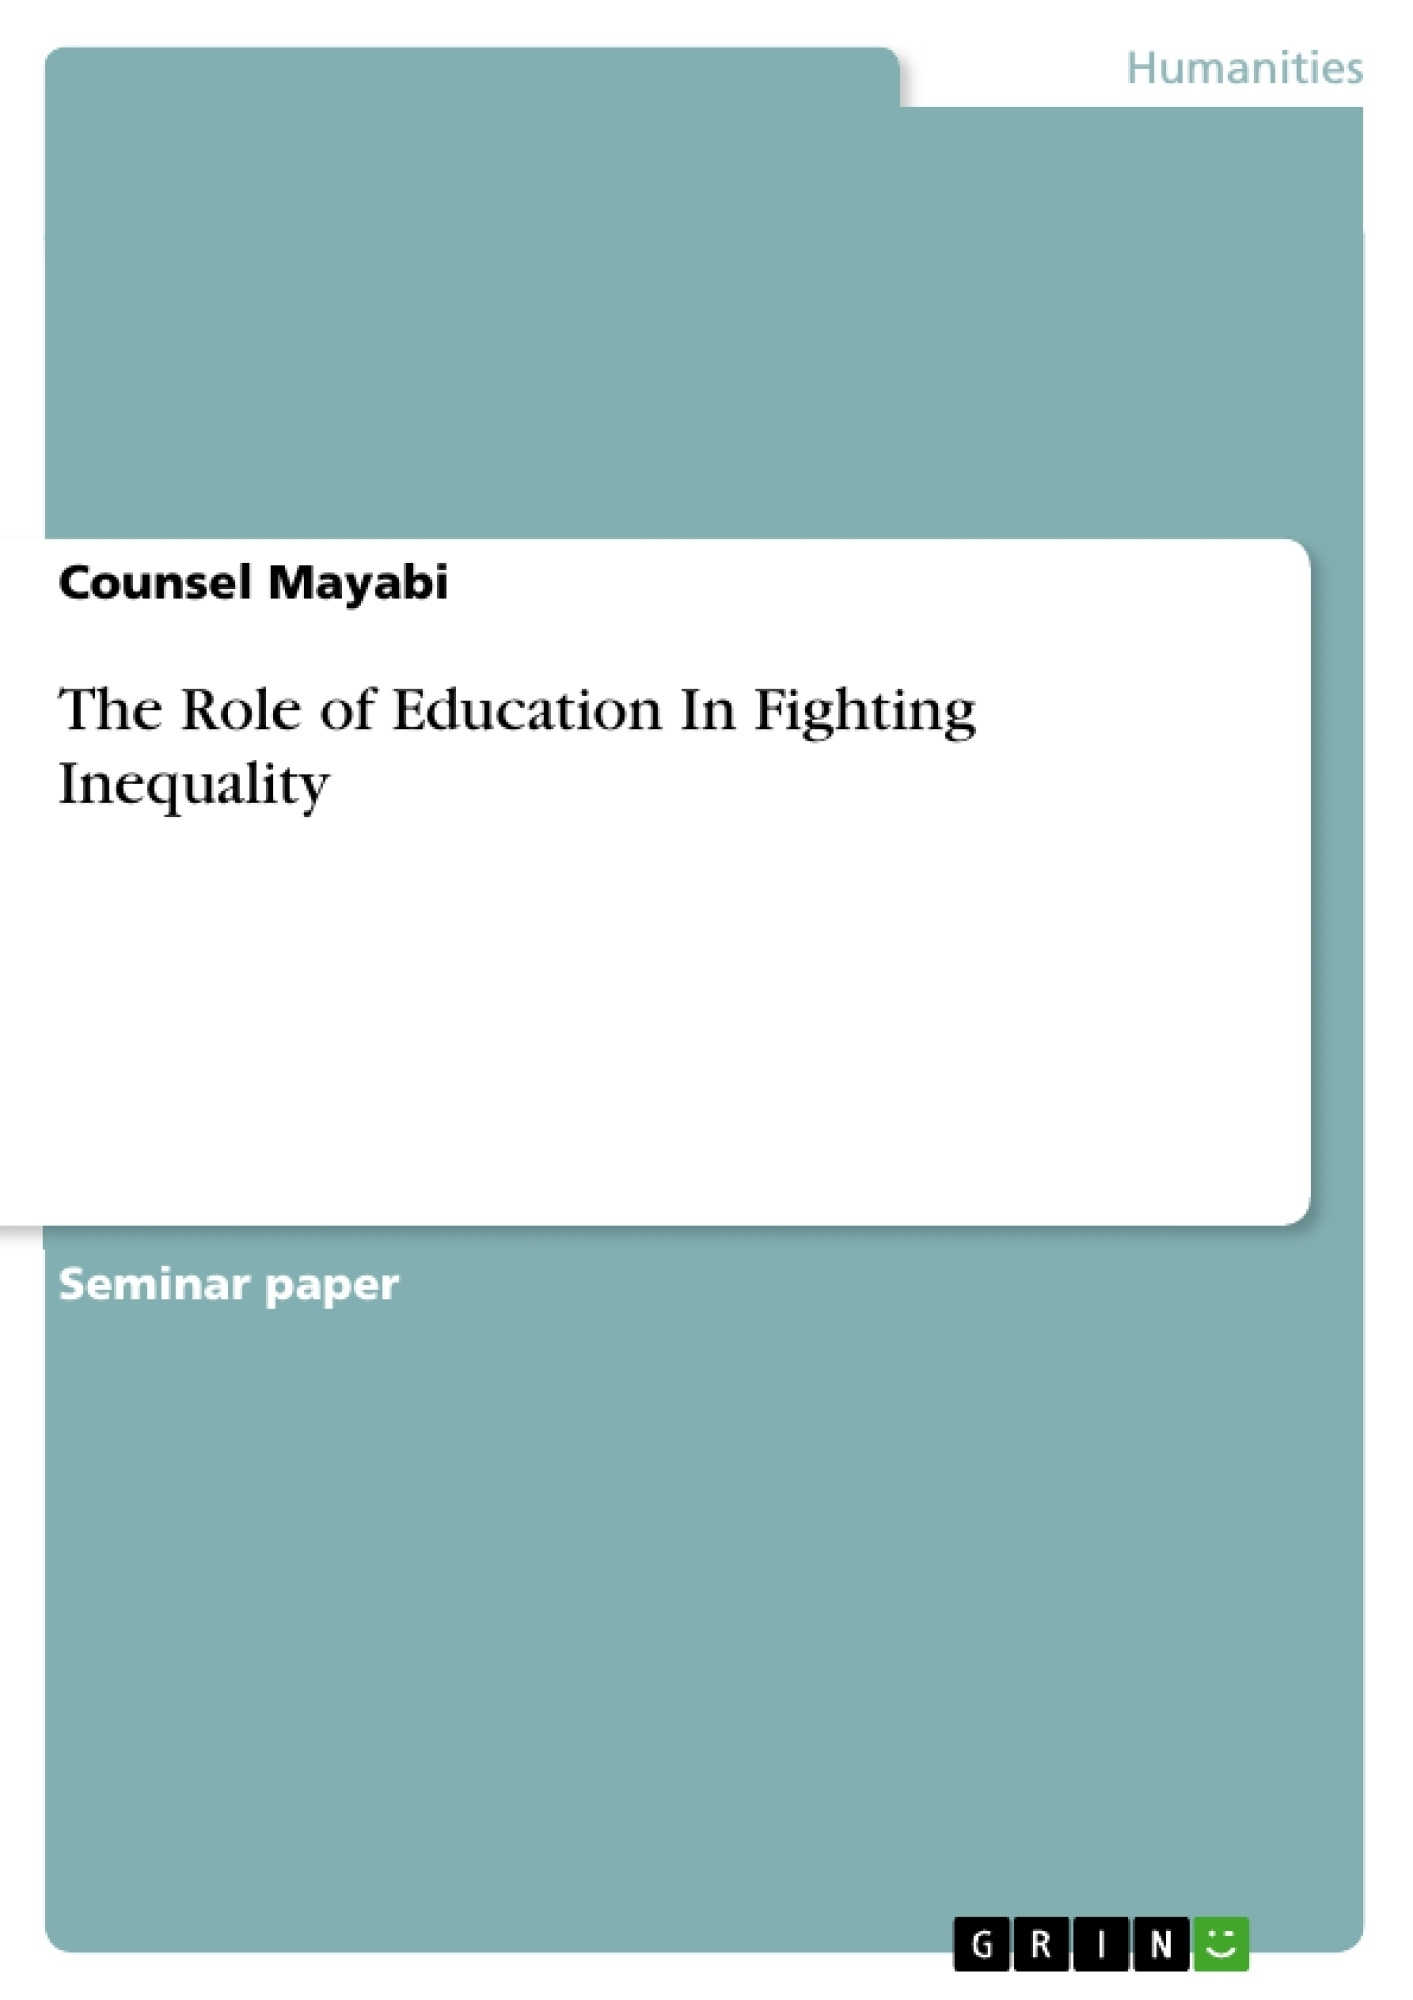 Title: The Role of Education In Fighting Inequality